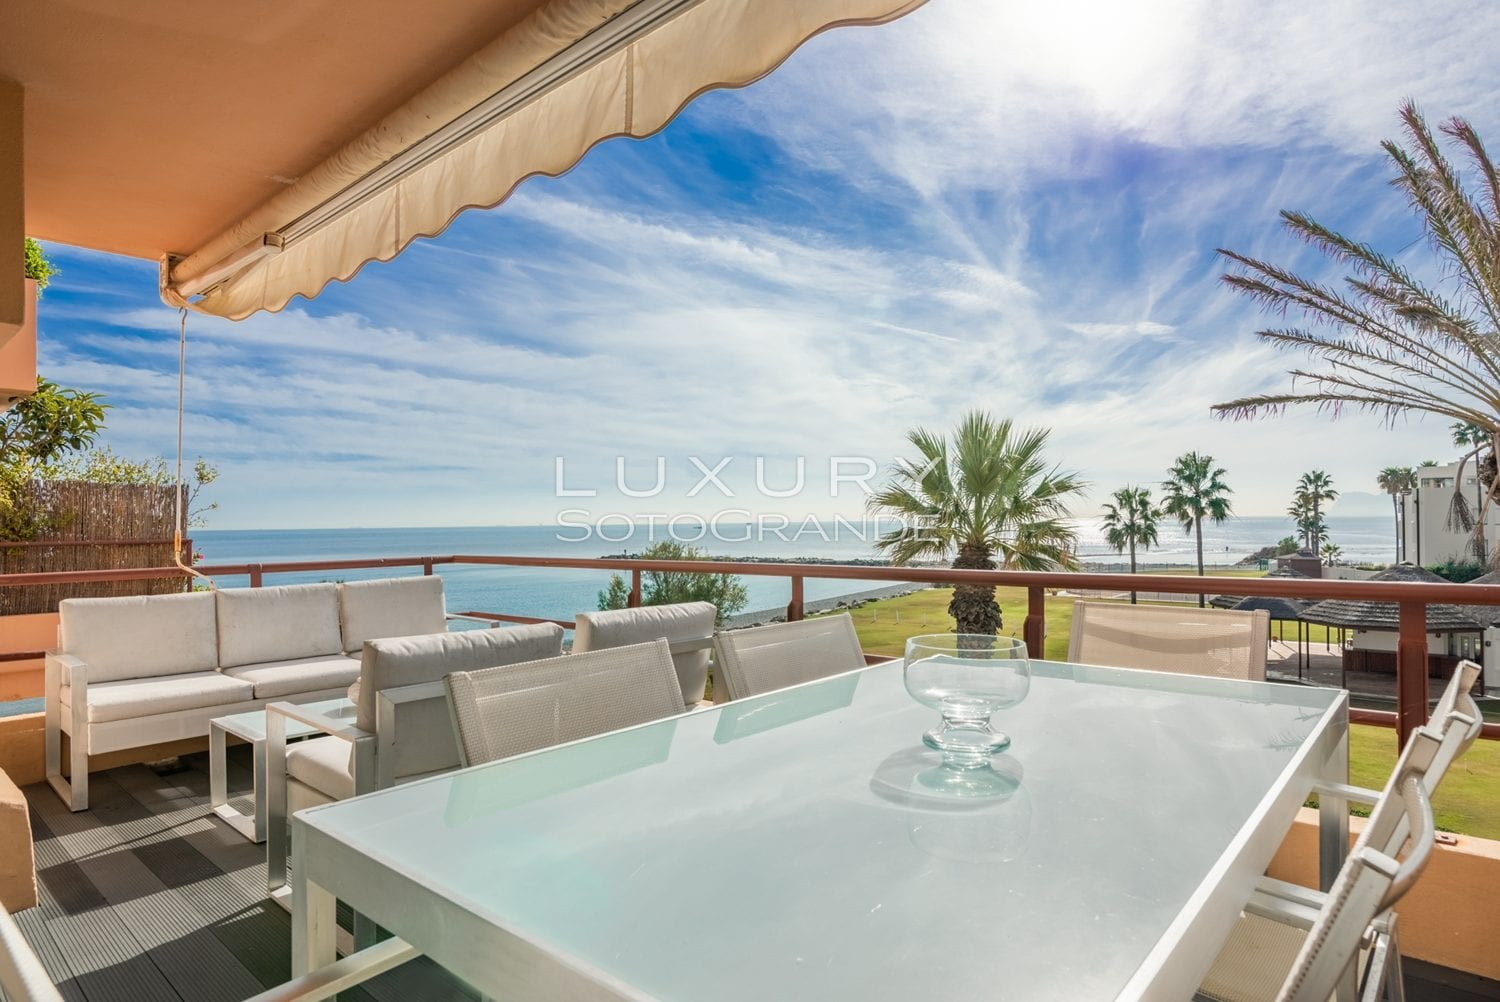 Apartment for sale with stunning sea views, Paseo del Mar, Sotogrande